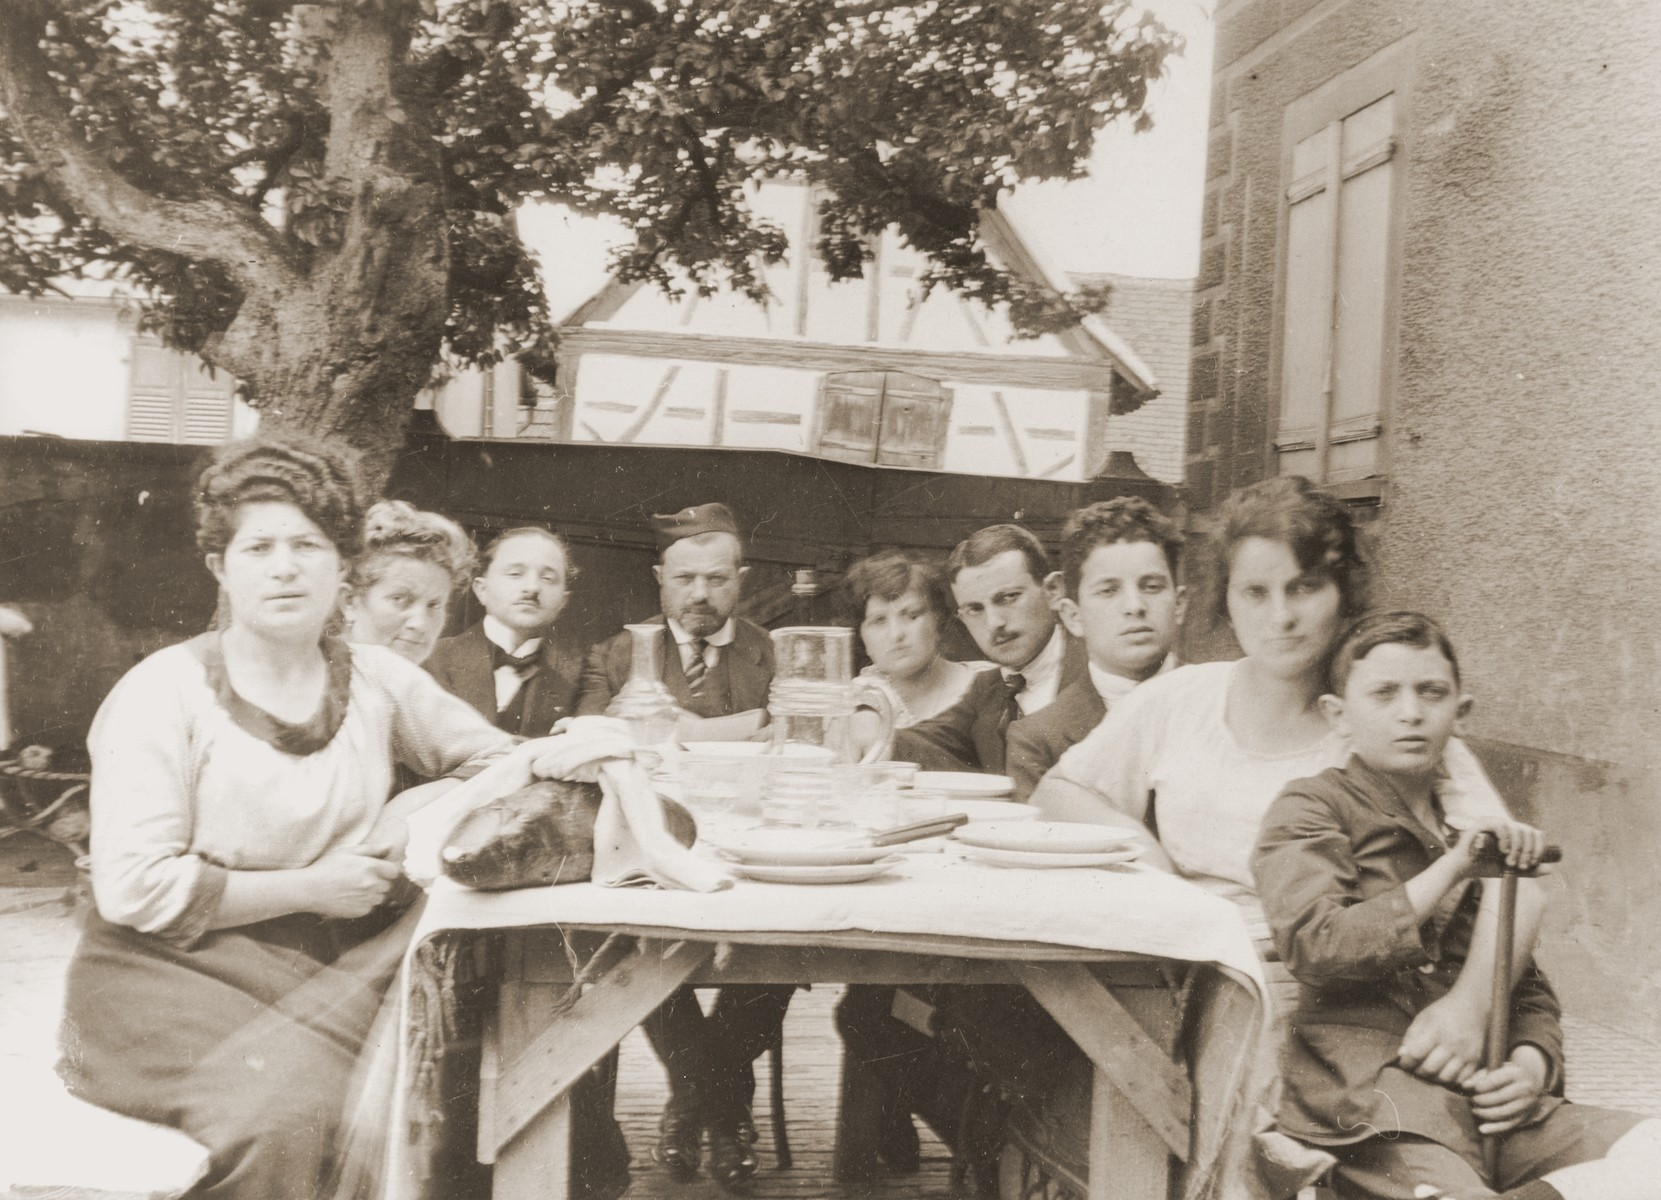 The Schwab family (the donor's maternal grandparents) seated around the table in Mommenheim, France.